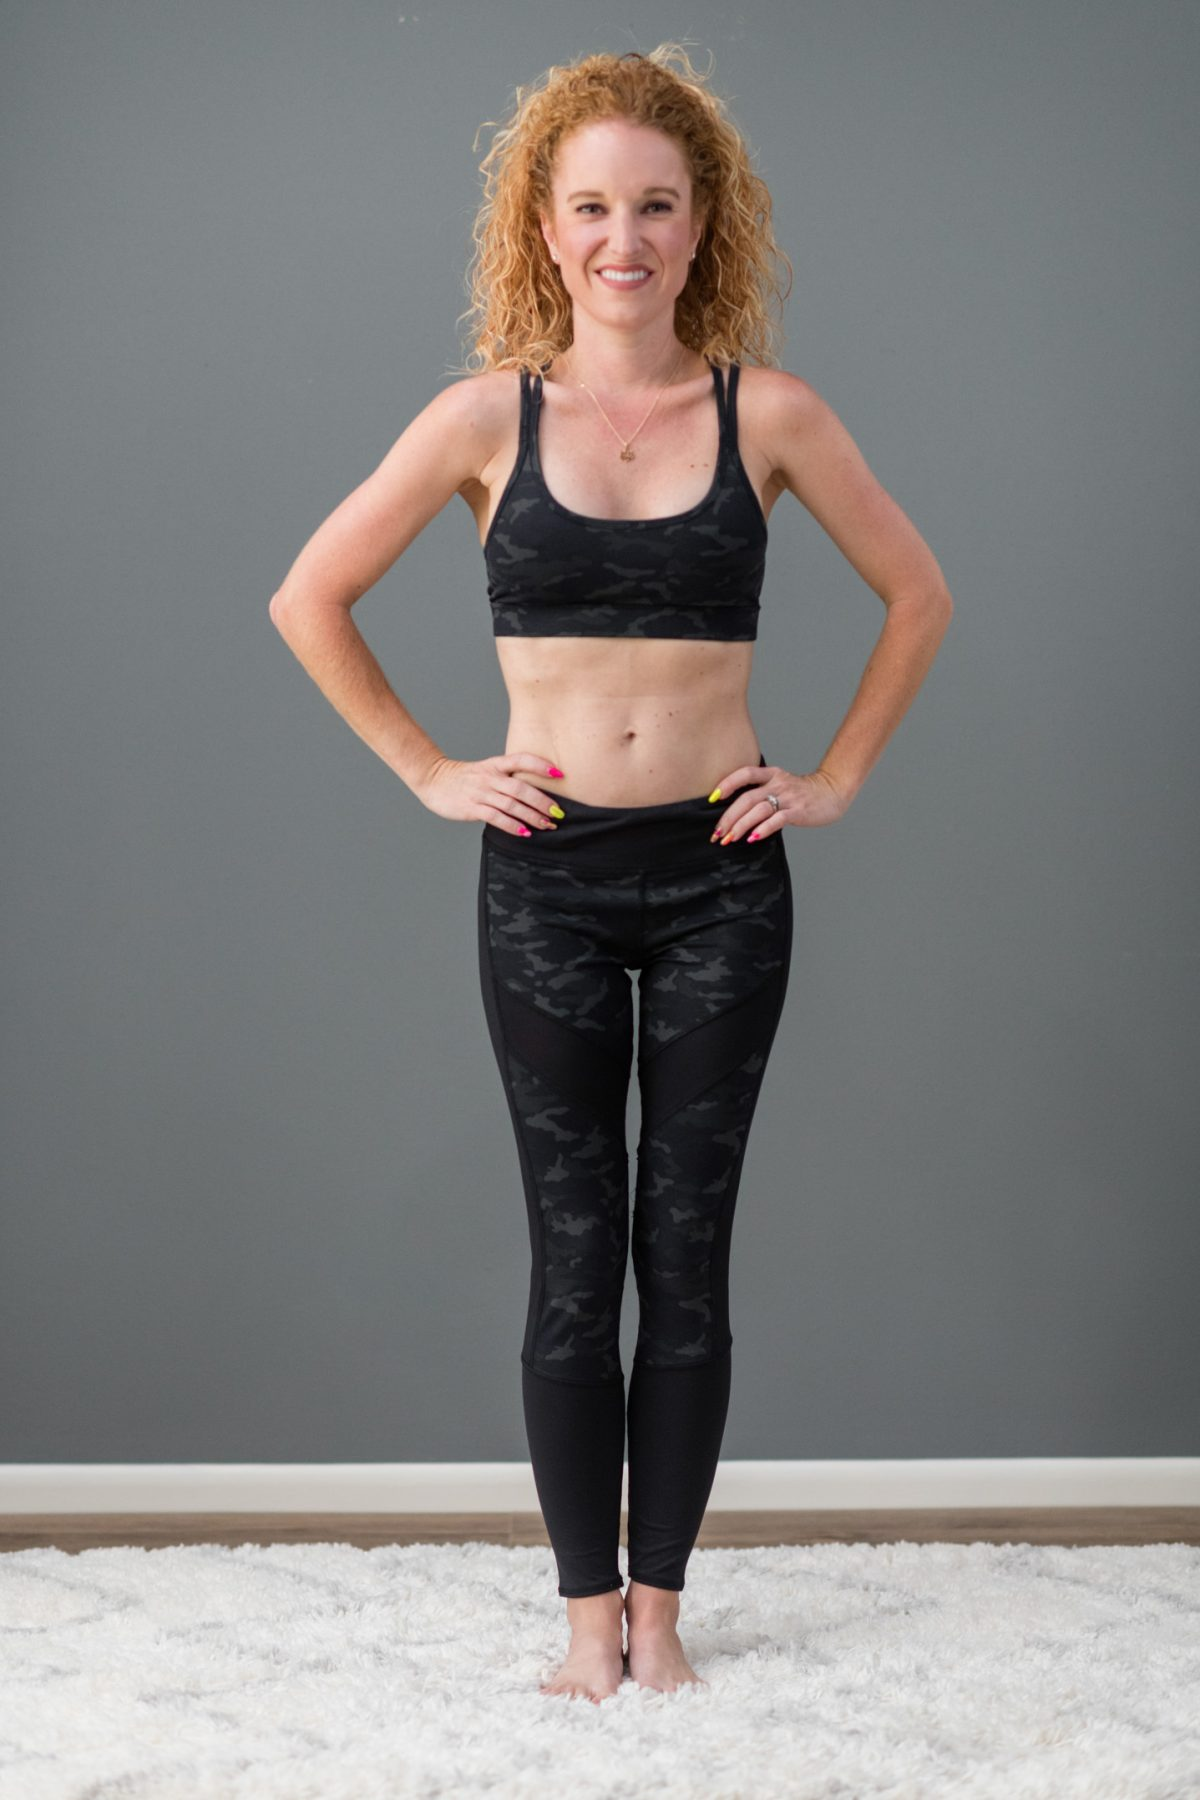 Threads 4 Thought Lotus Sports Bra in Black Camo